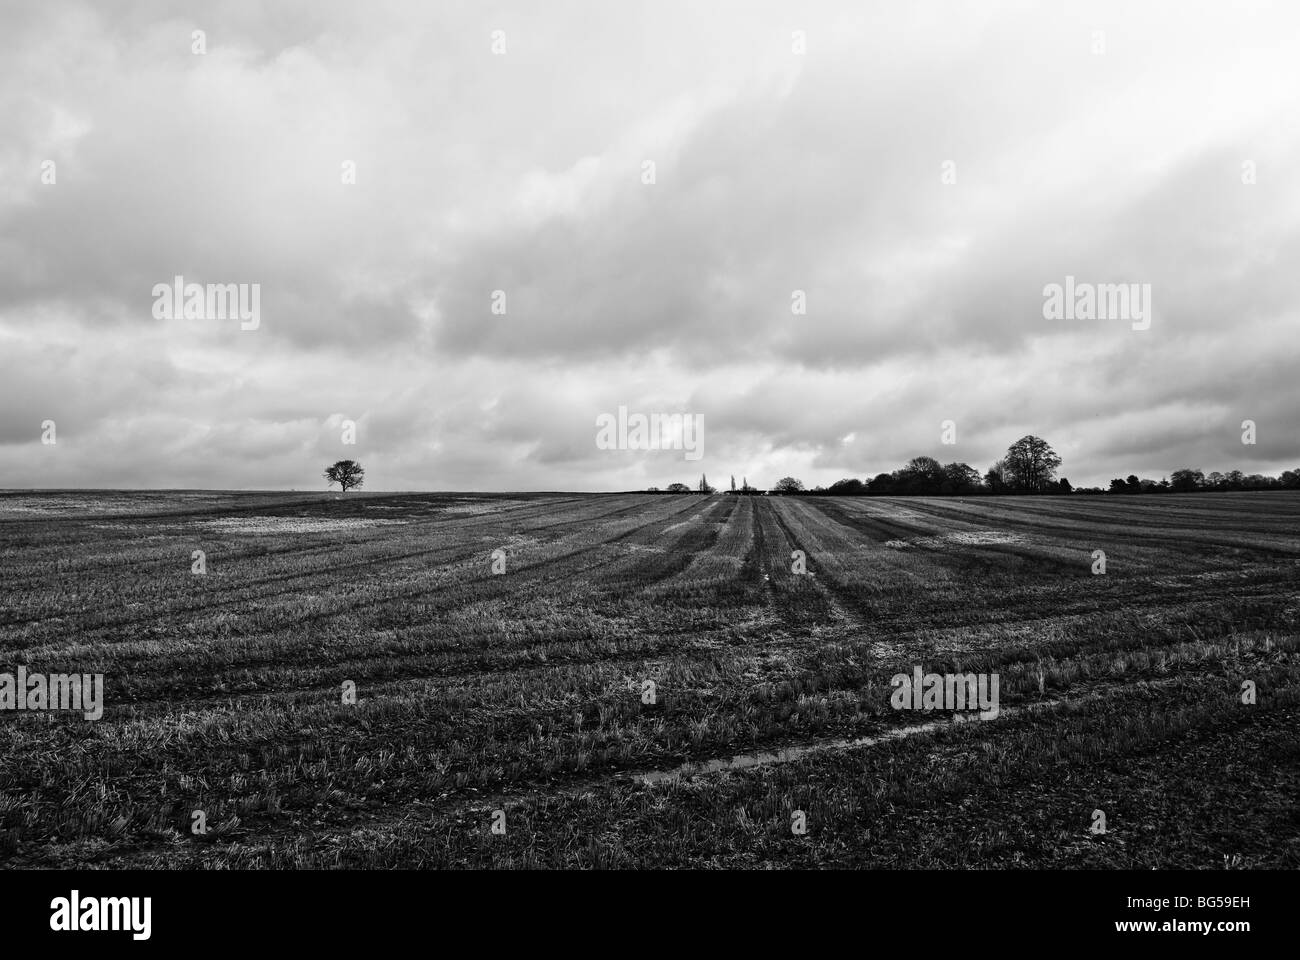 Expanse of field - Stock Image